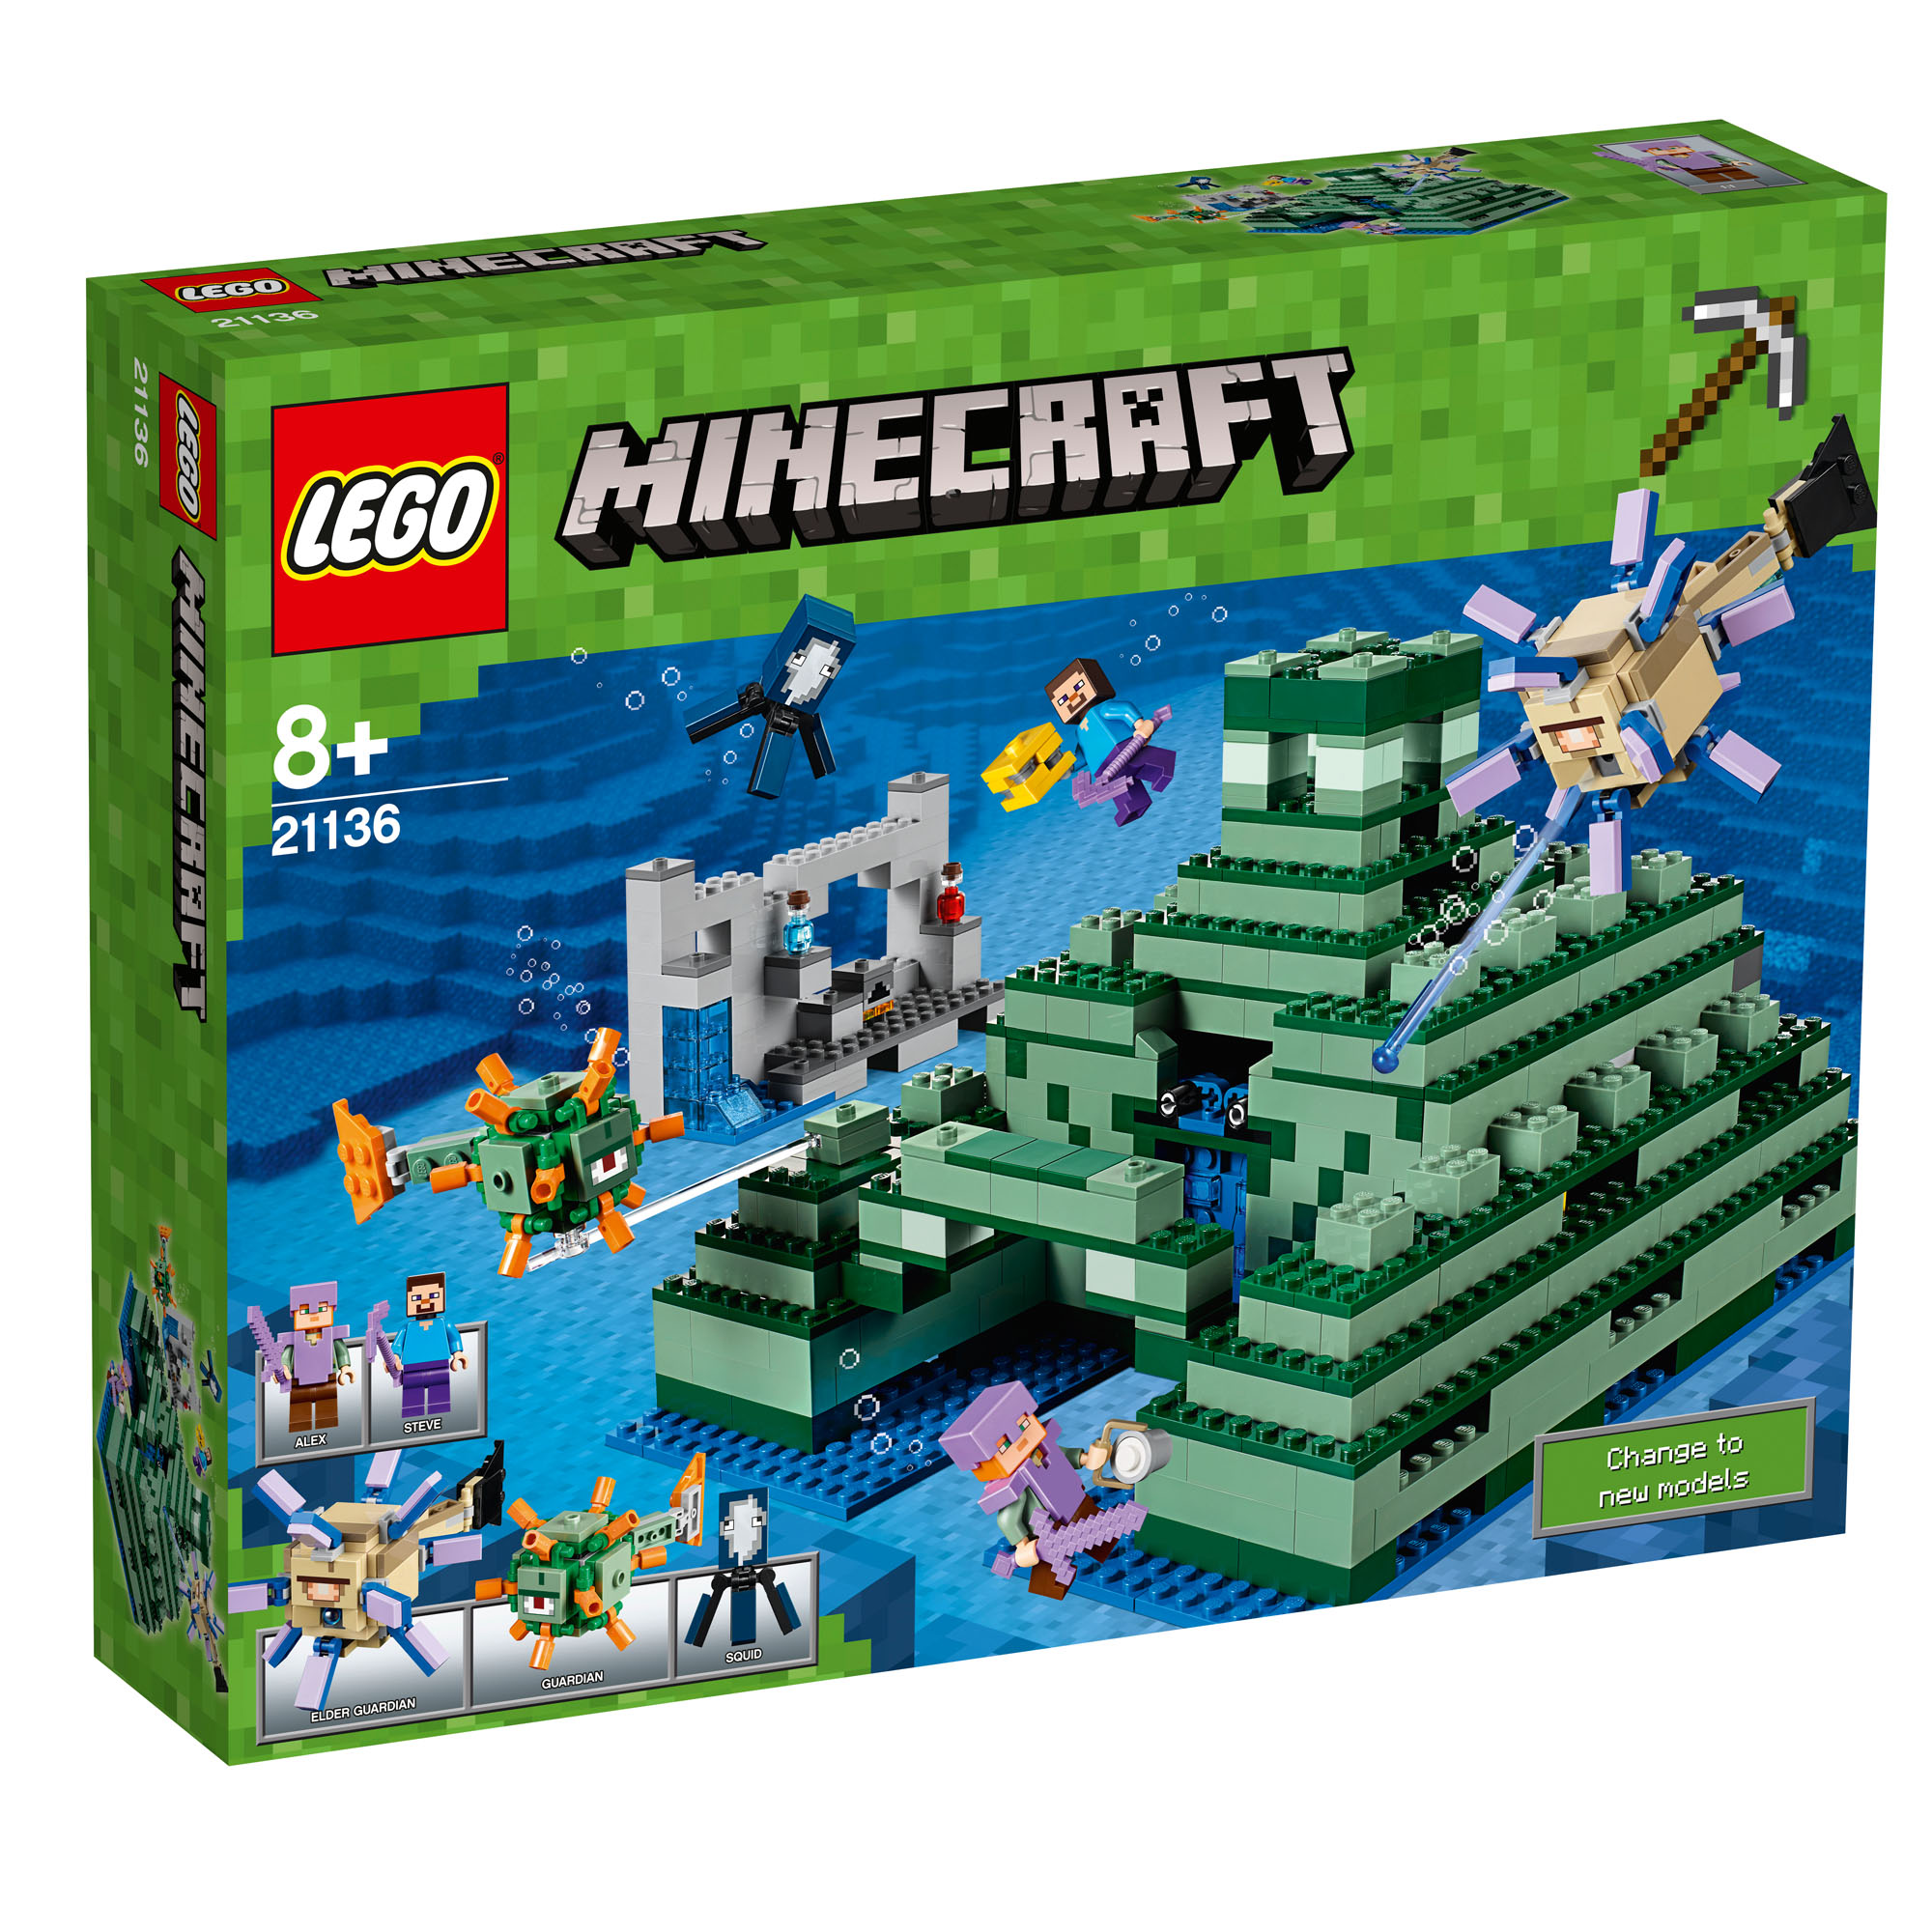 LEGO Baukästen & Sets 21136 LEGO Minecraft The Ocean Monument 1122 Pieces 8 Years New Release 2017!